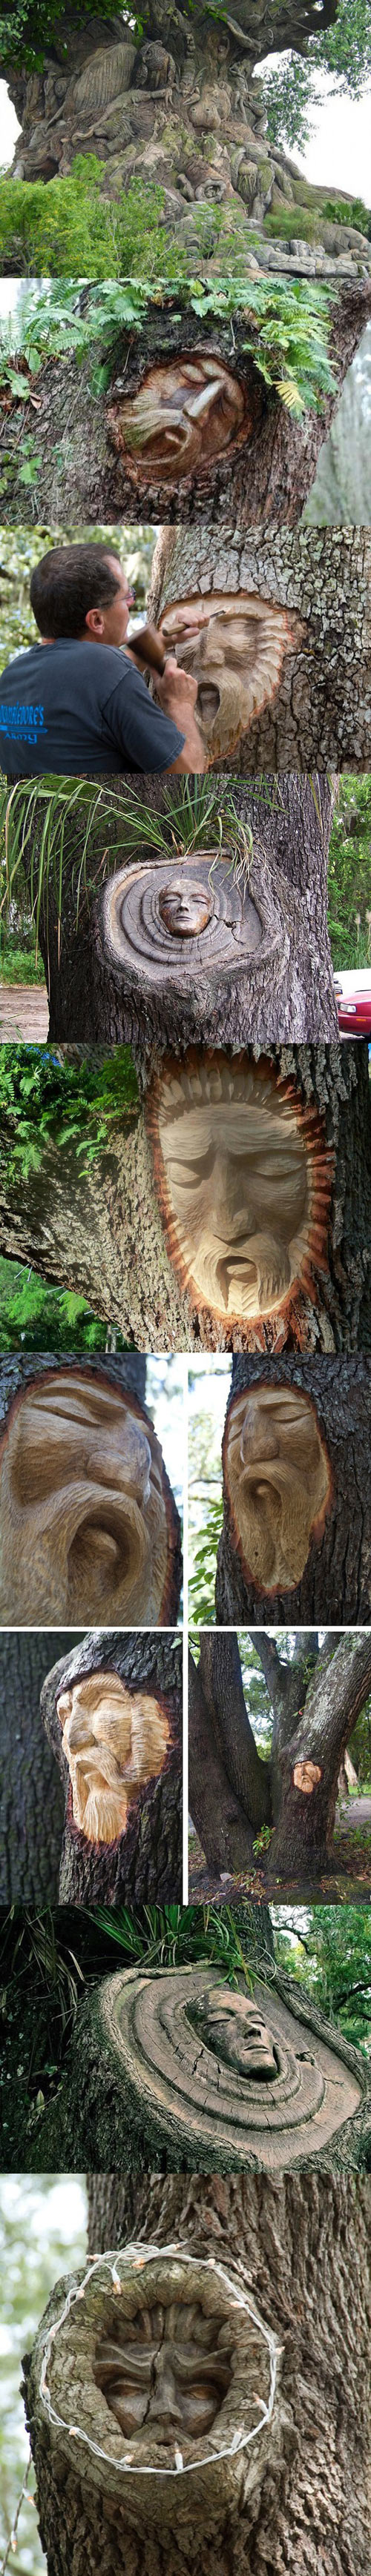 cool-tree-spirit-carving-faces